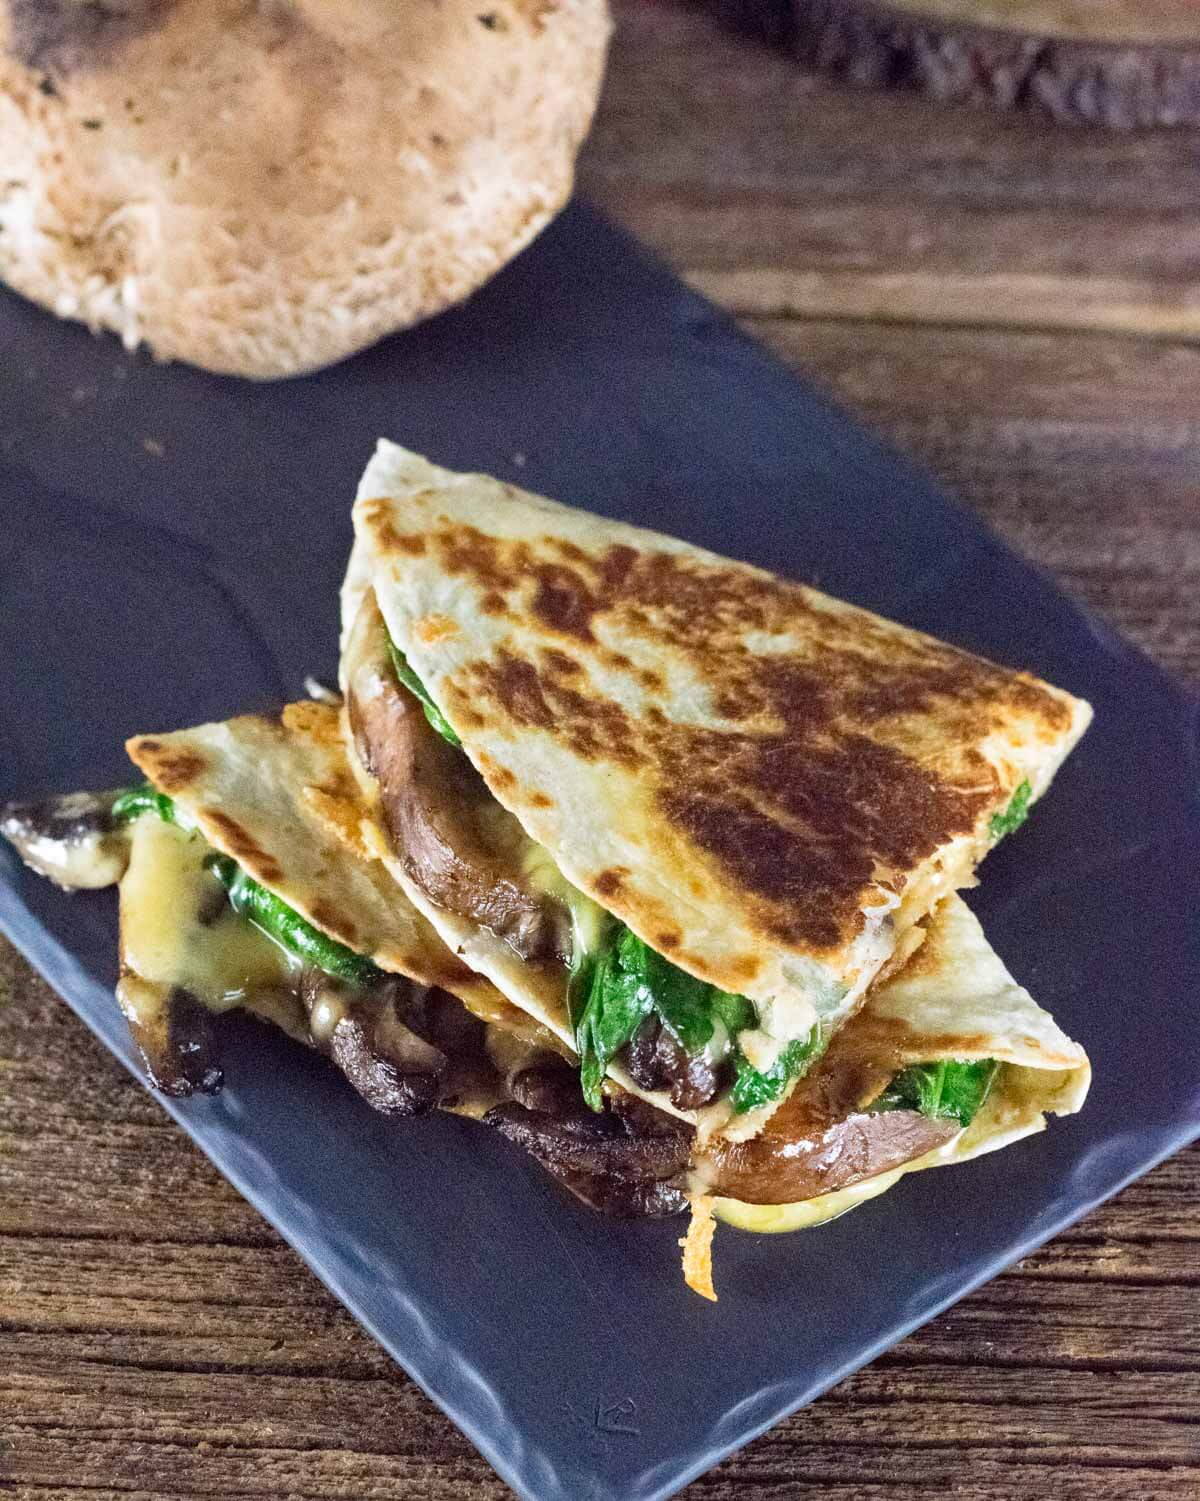 Vegetarian Mushroom Quesadillas stacked on each other.